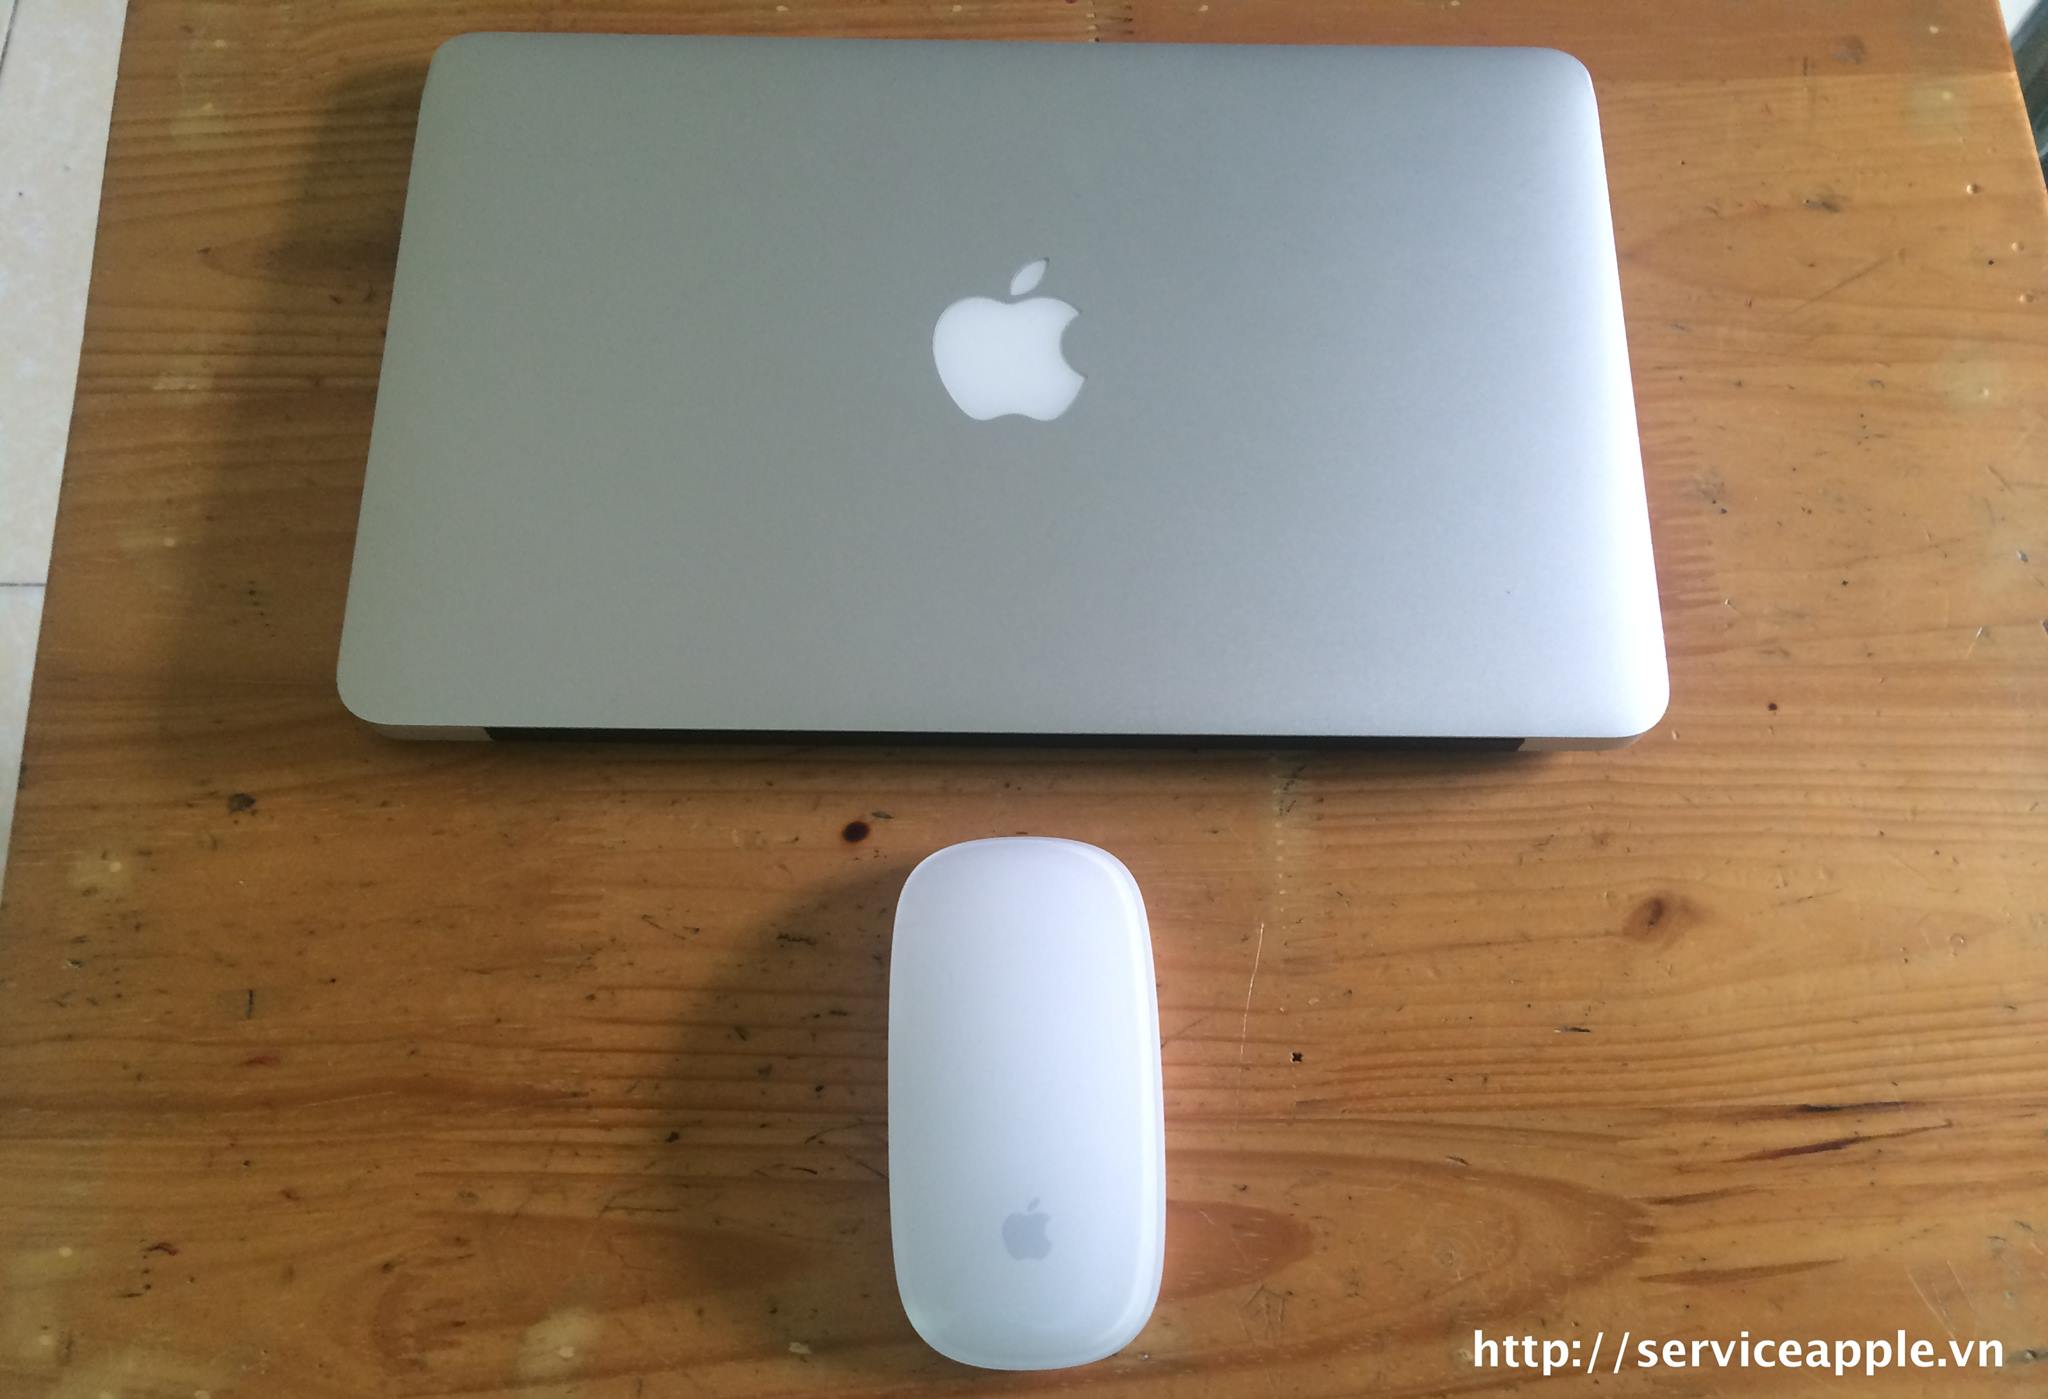 APPLE MAGIC MOUSE .jpg